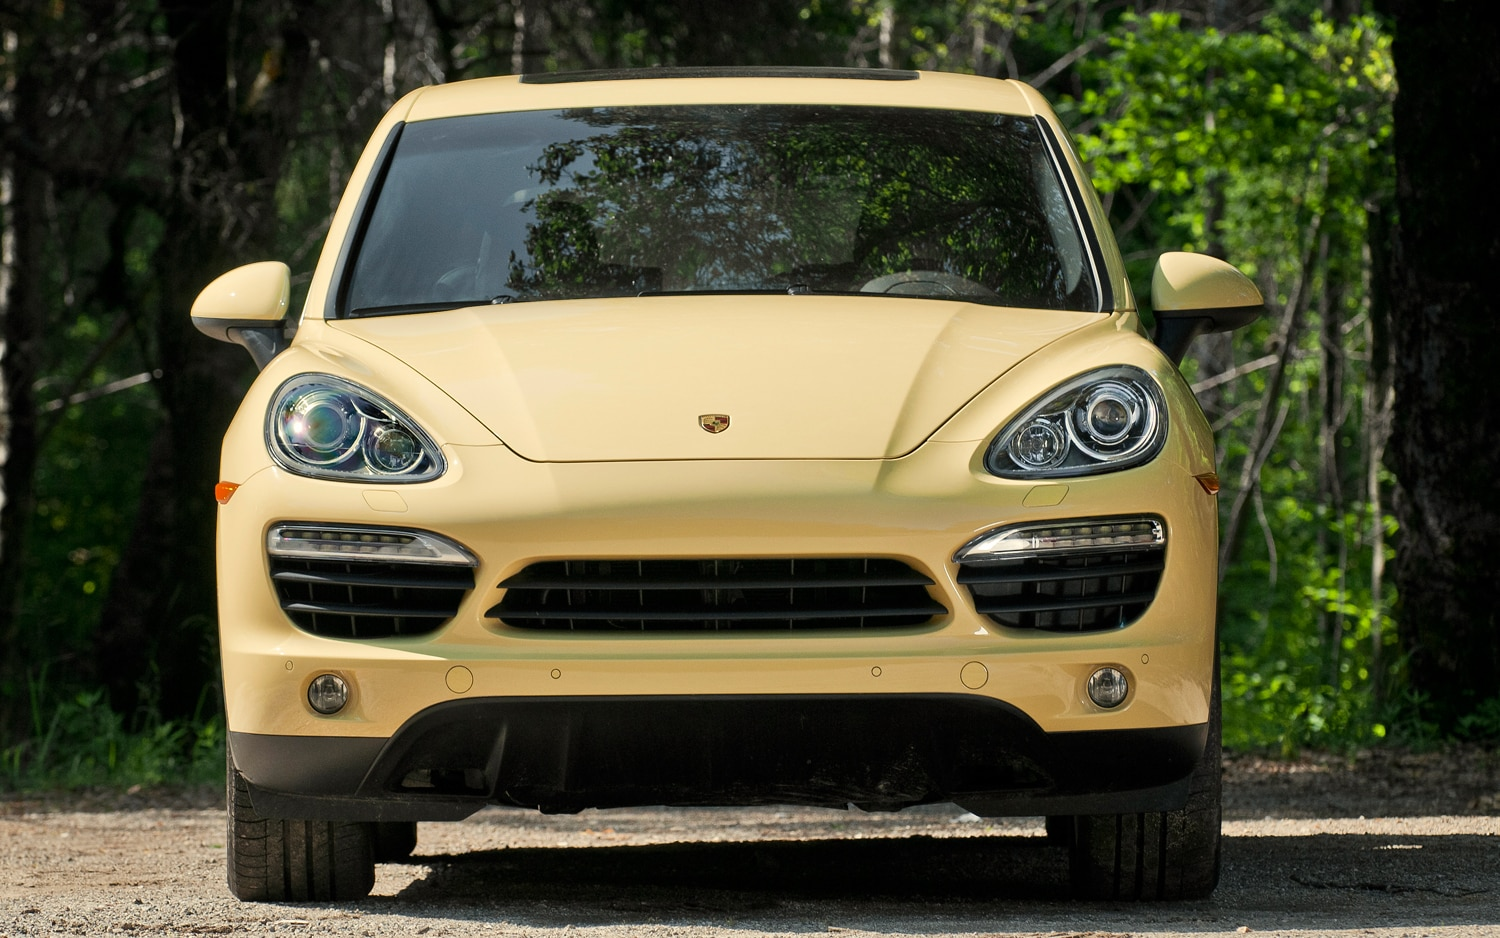 Recall Headlights May Fall Out On Certain 2011,2012 Porsche